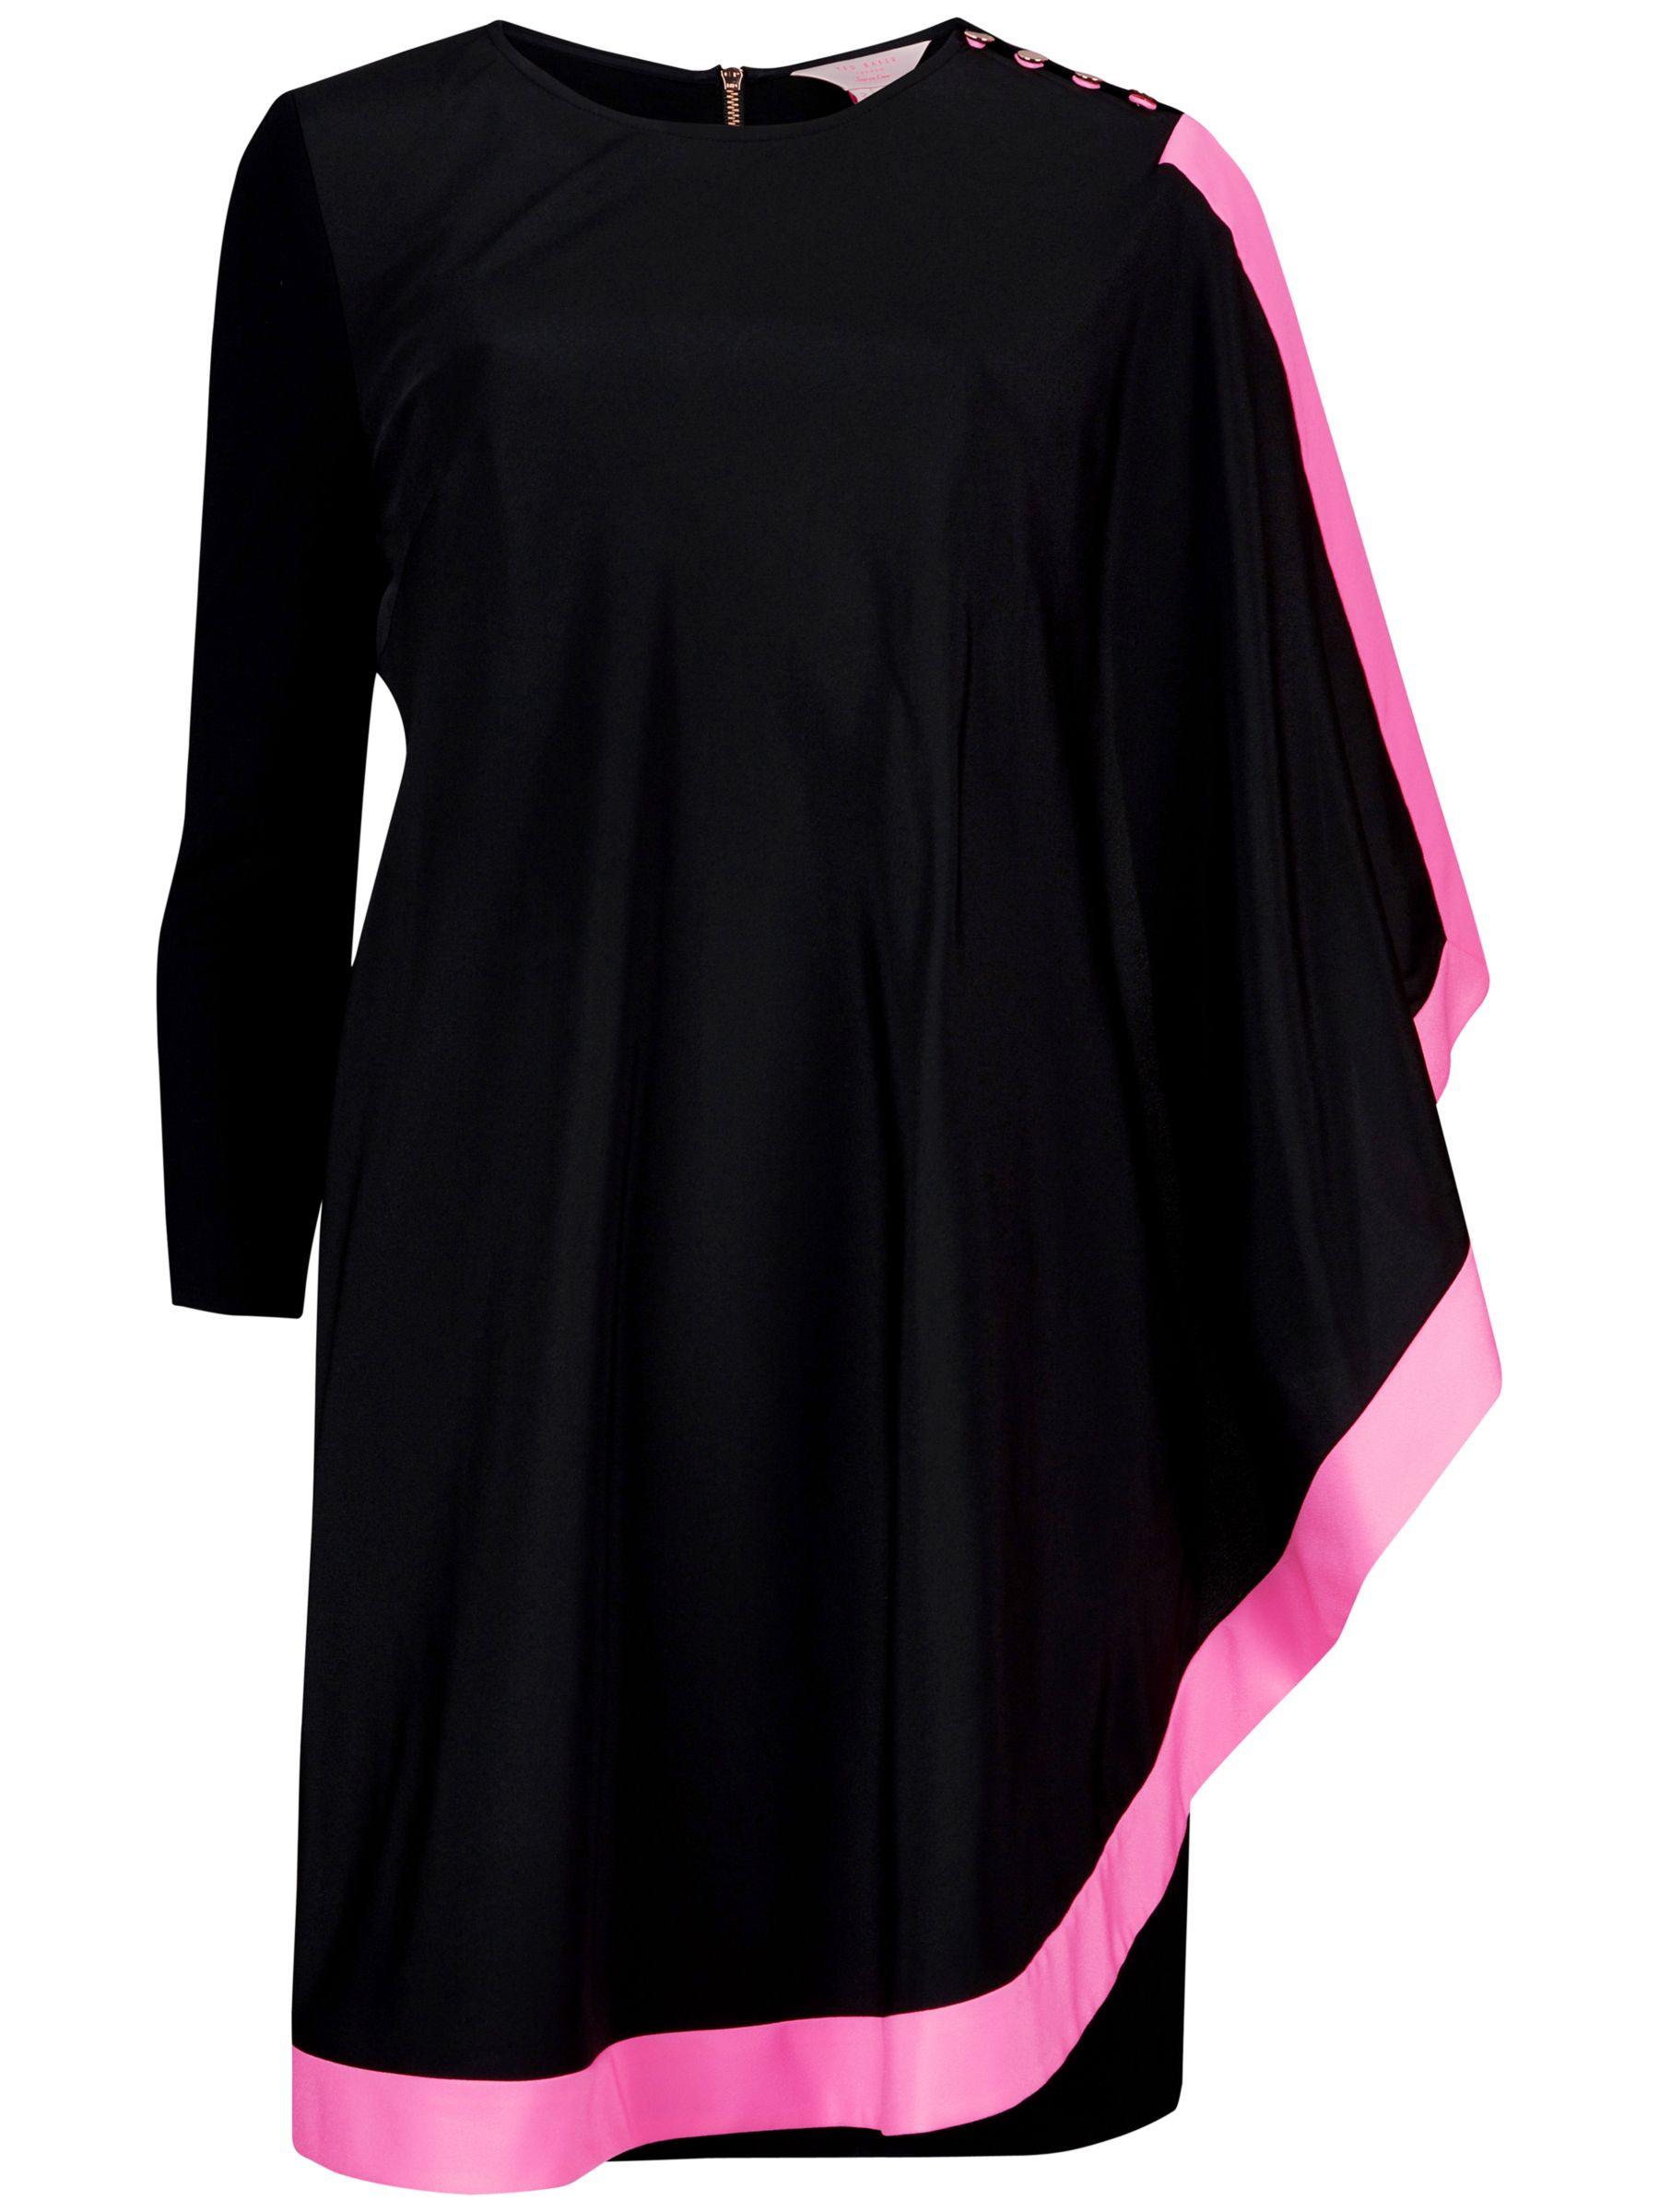 ted baker long sleeved one sided draped tunic dress bright pink, ted, baker, long, sleeved, sided, draped, tunic, dress, bright, pink, ted baker, 5|3|2|1|4|0, women, womens dresses, fashion magazine, womenswear, men, brands l-z, 1587299